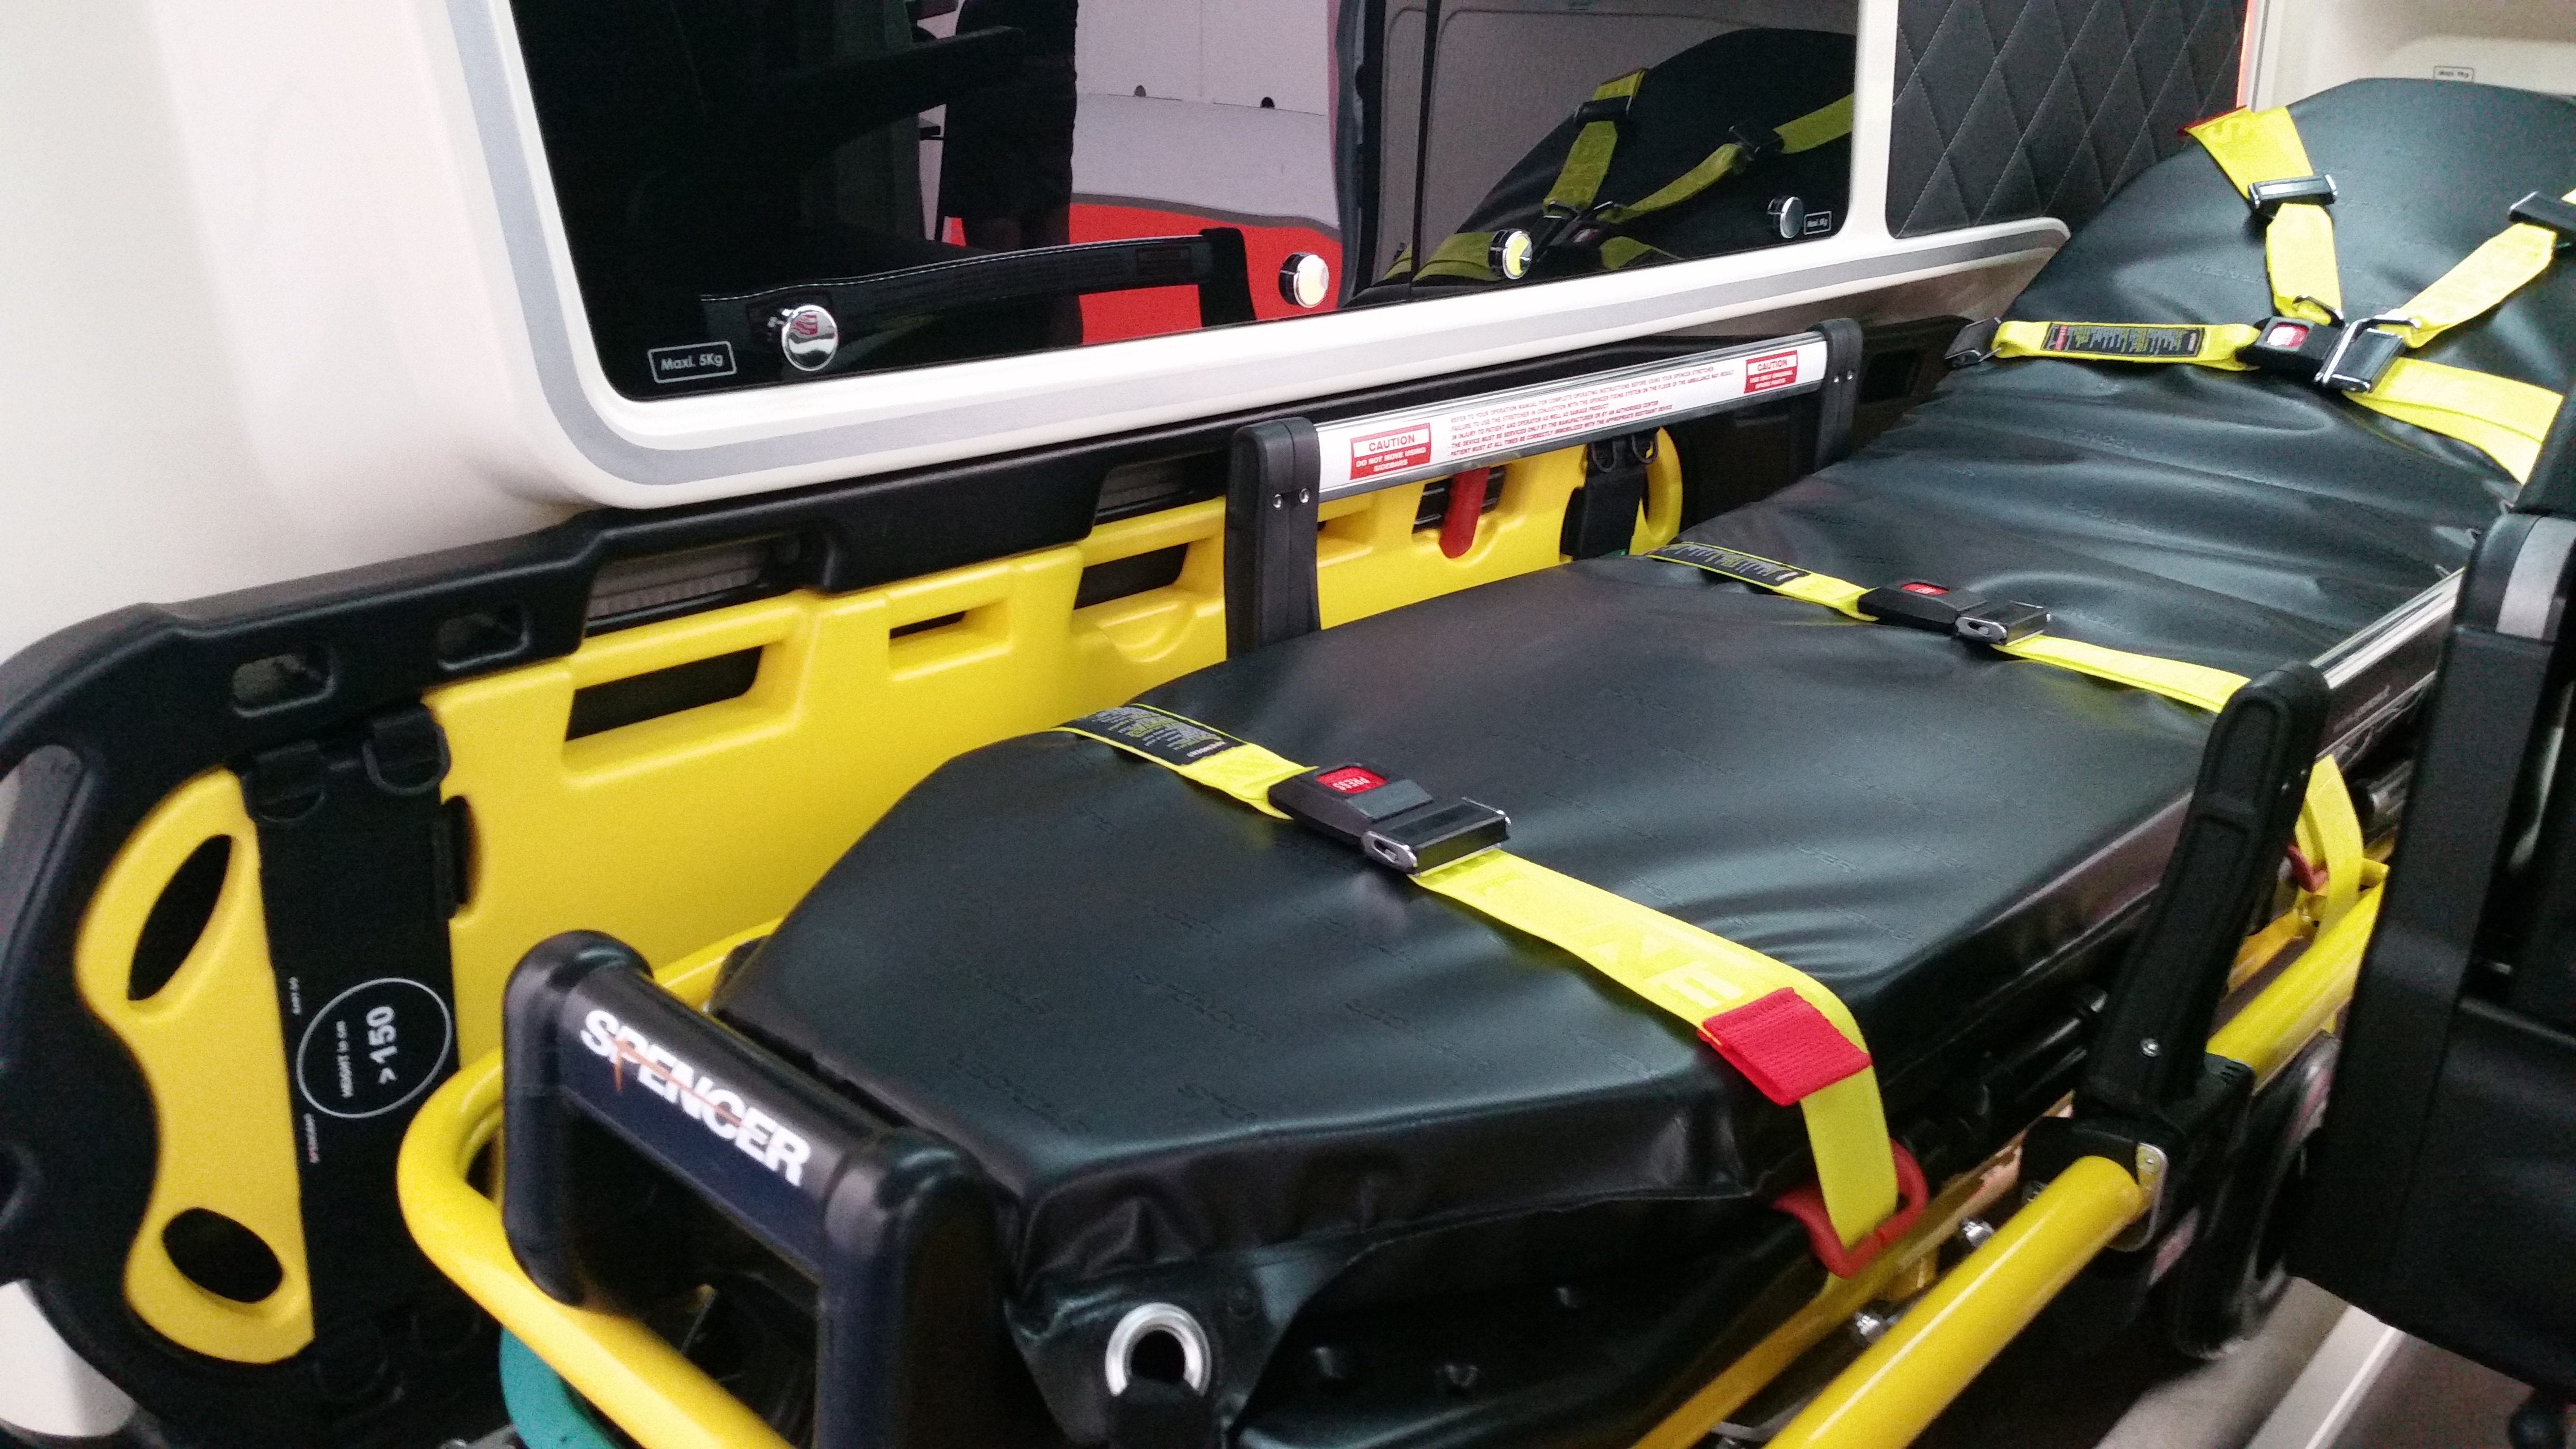 RETTmobil 2016, what about patient handling?